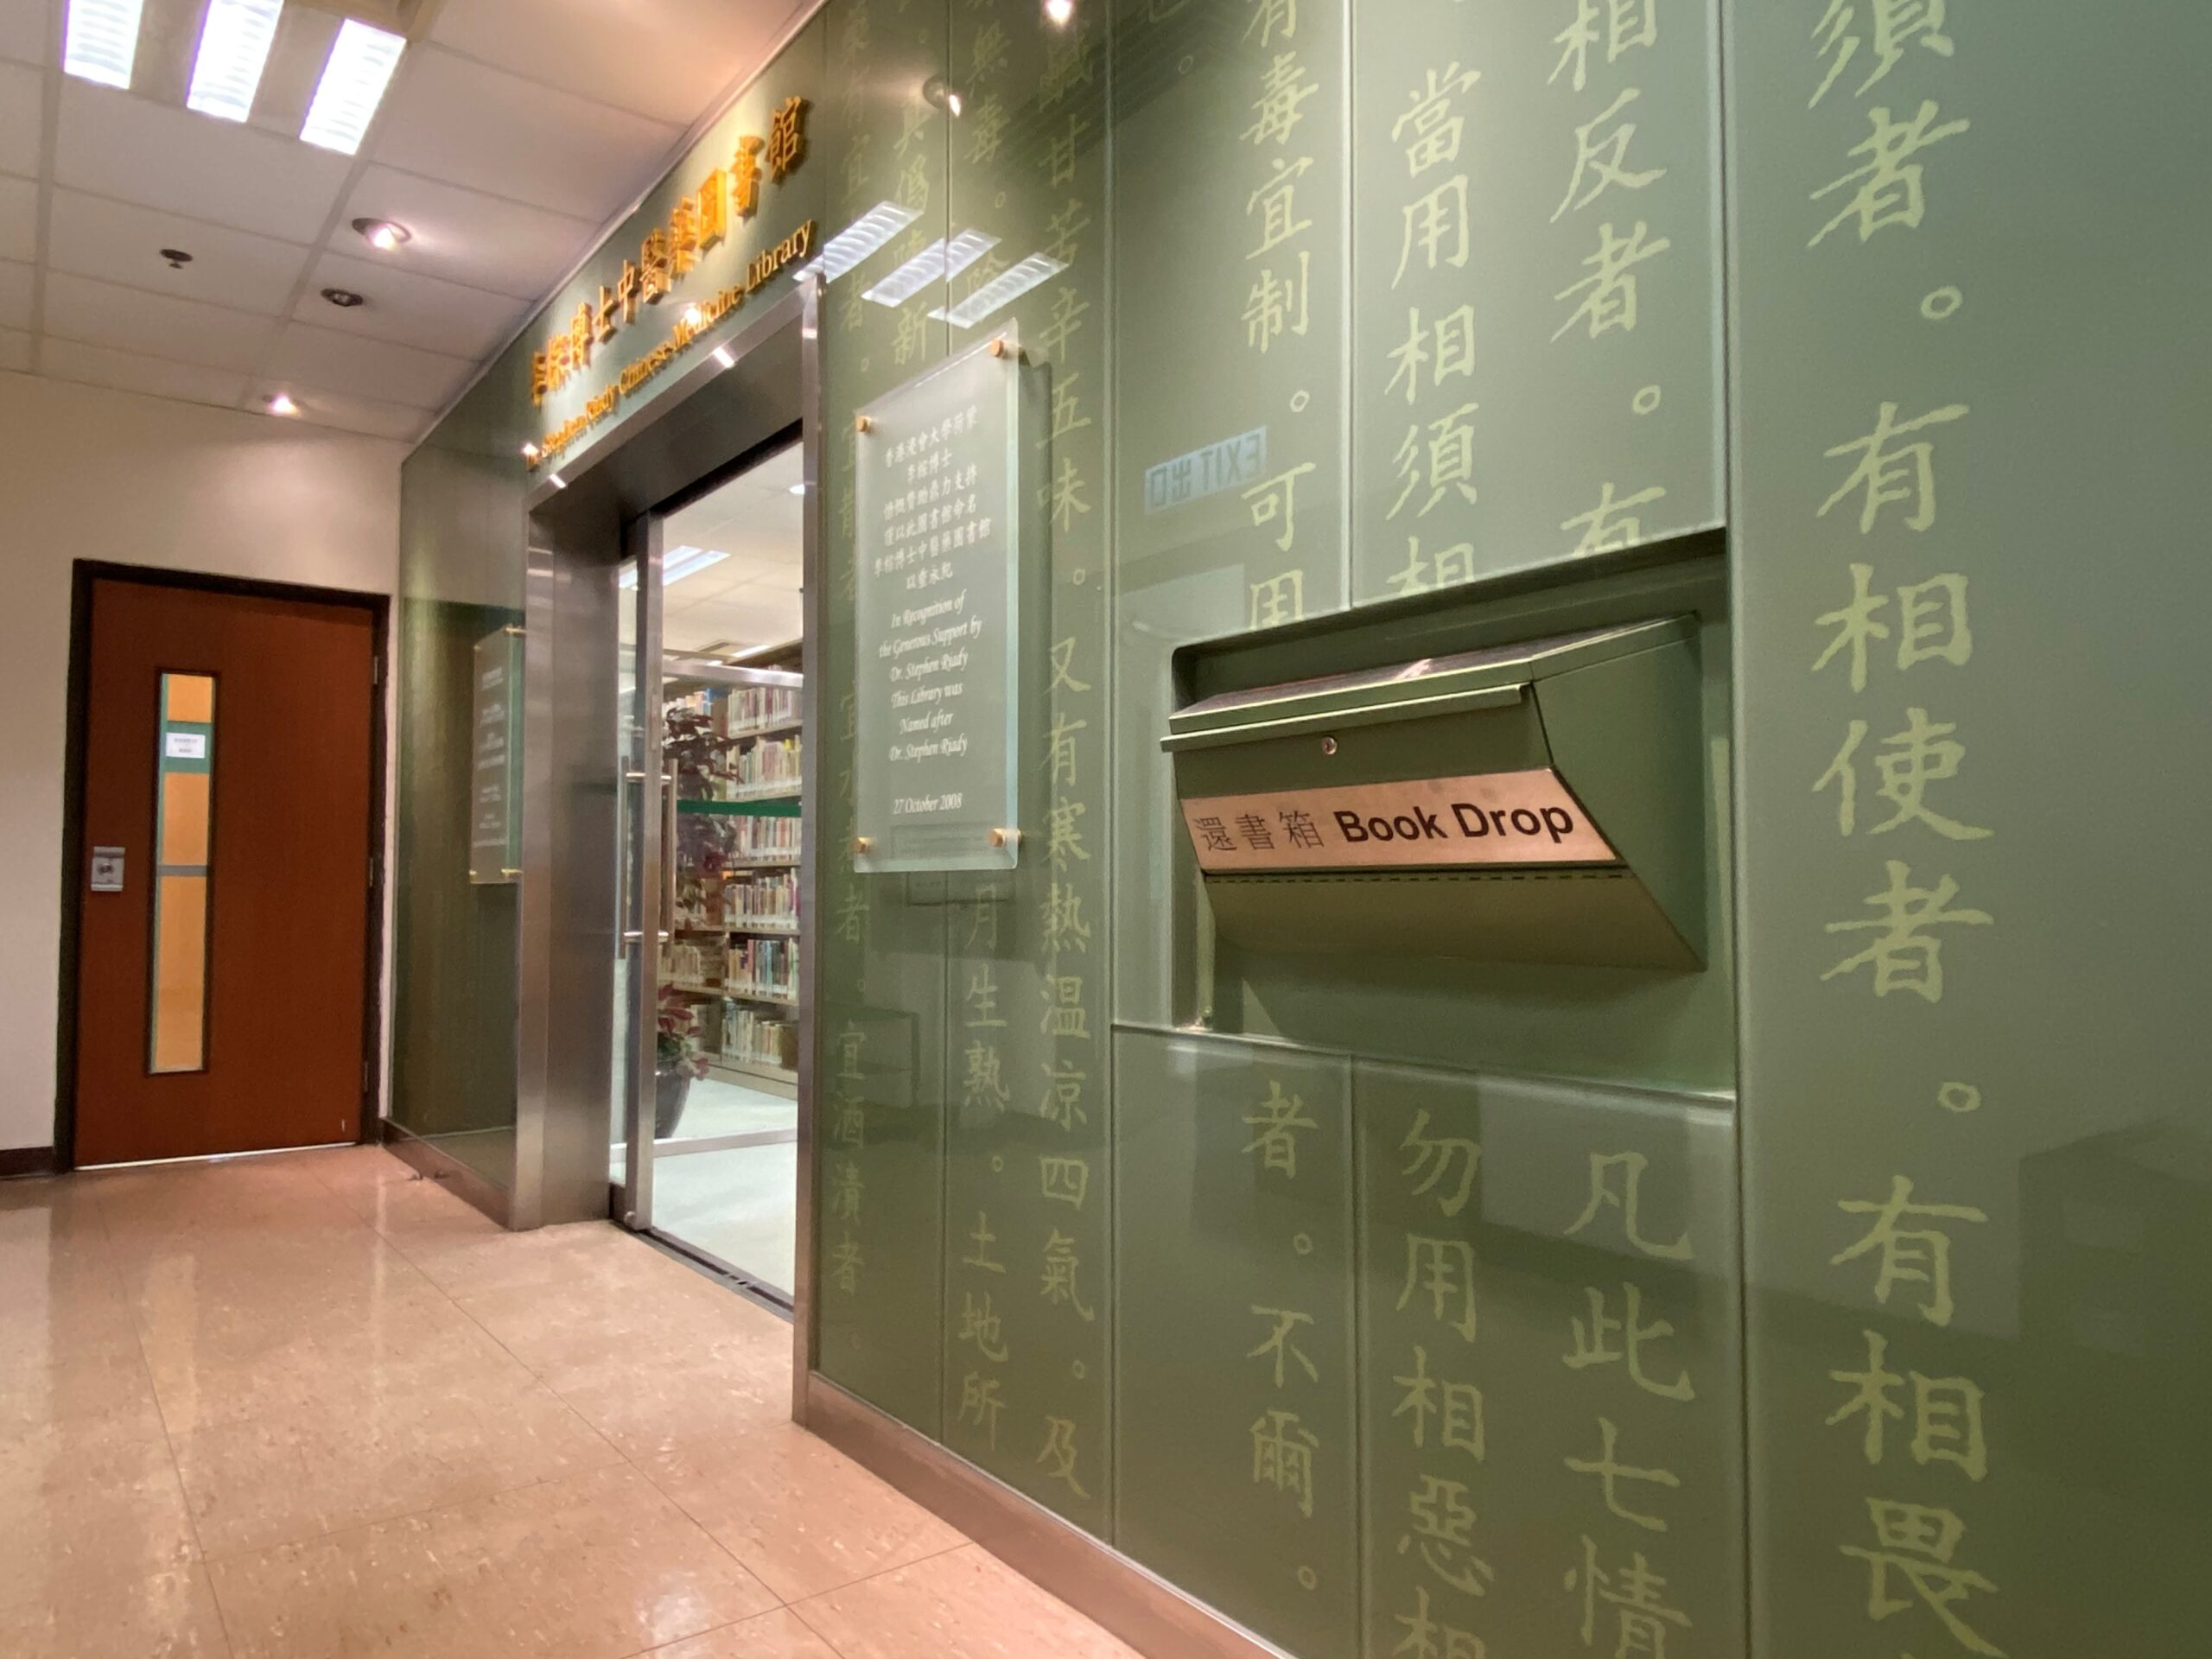 Picture of Book drop located outside the entrance of Chinese Medicine Library